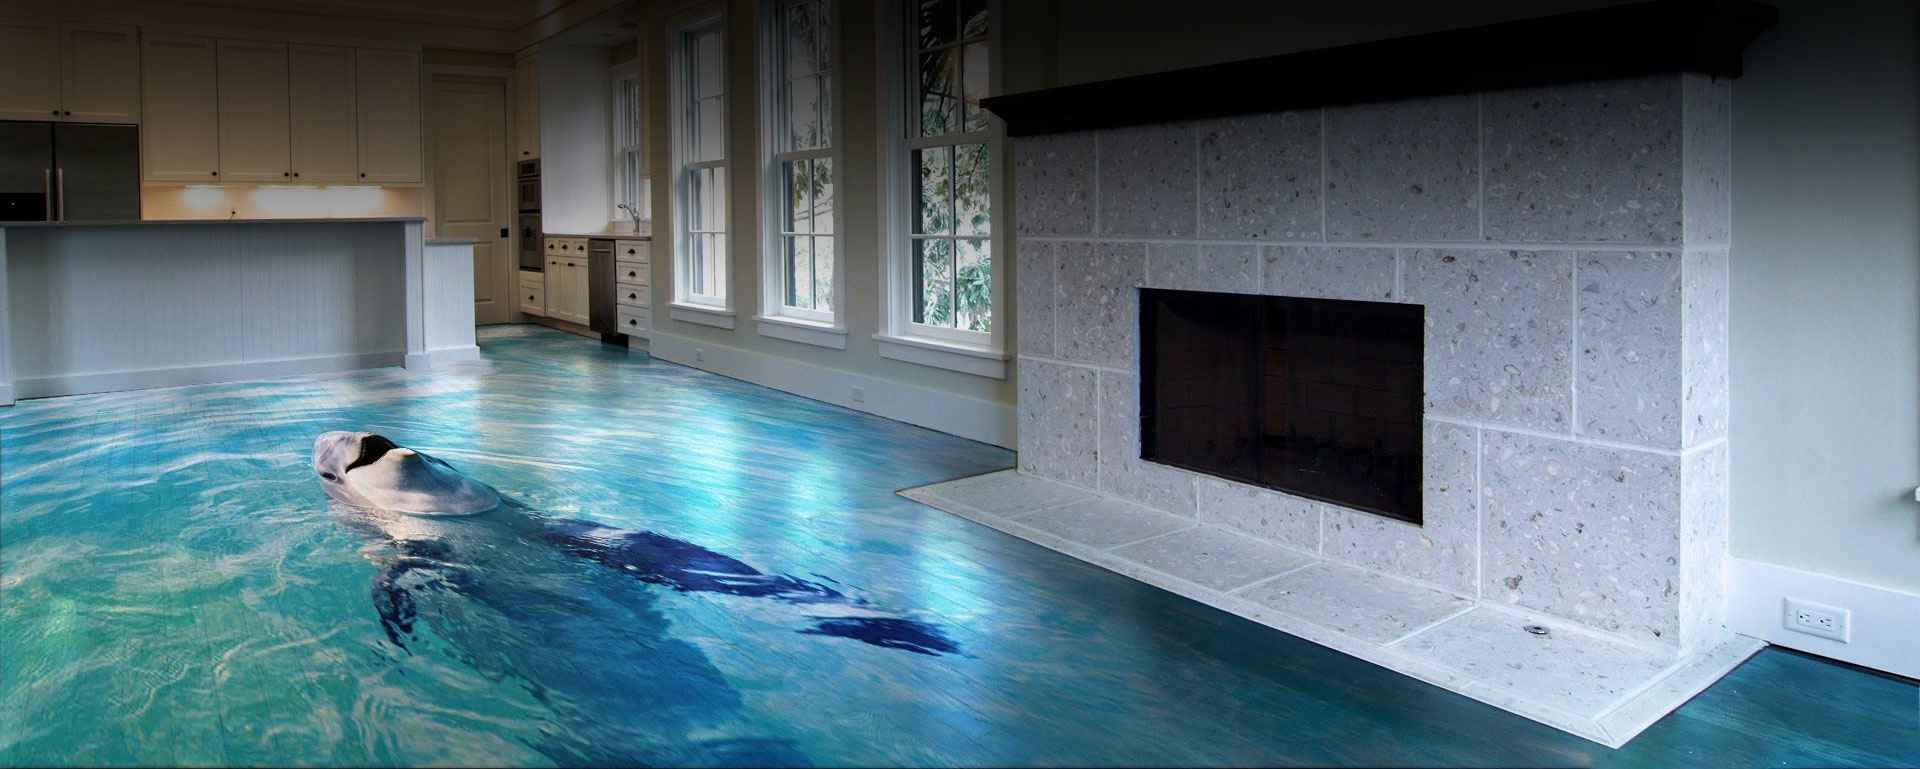 3d epoxy flooring in lucknow